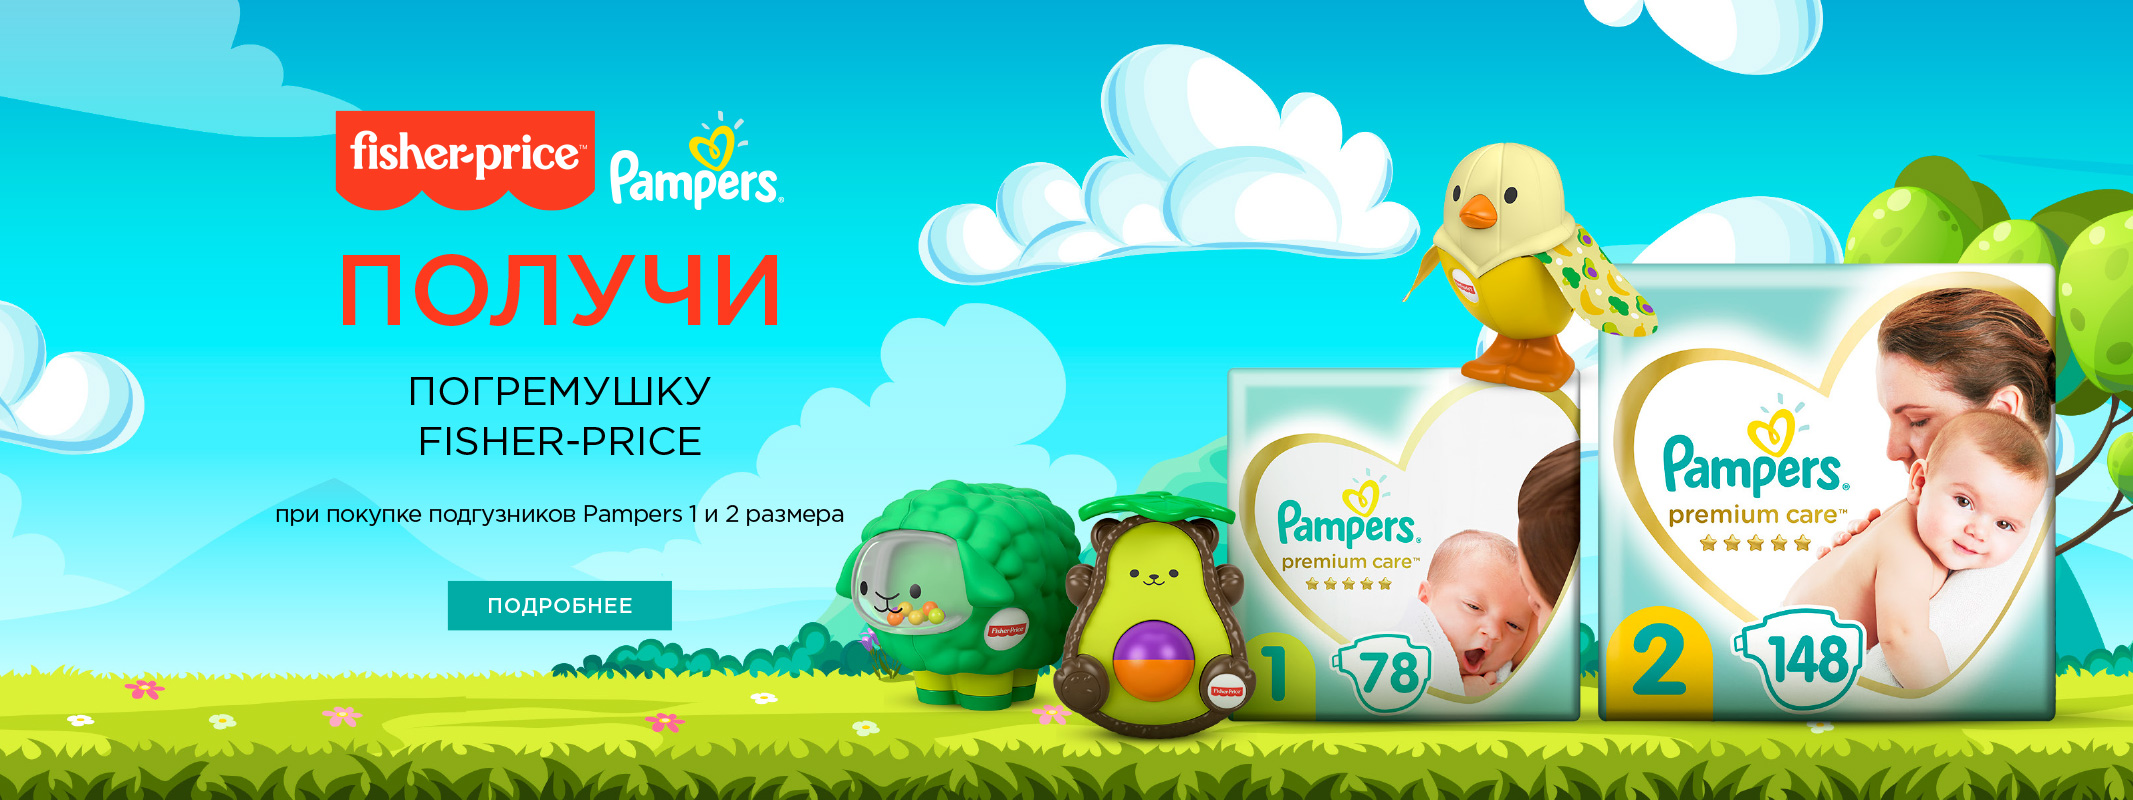 Pampers_main